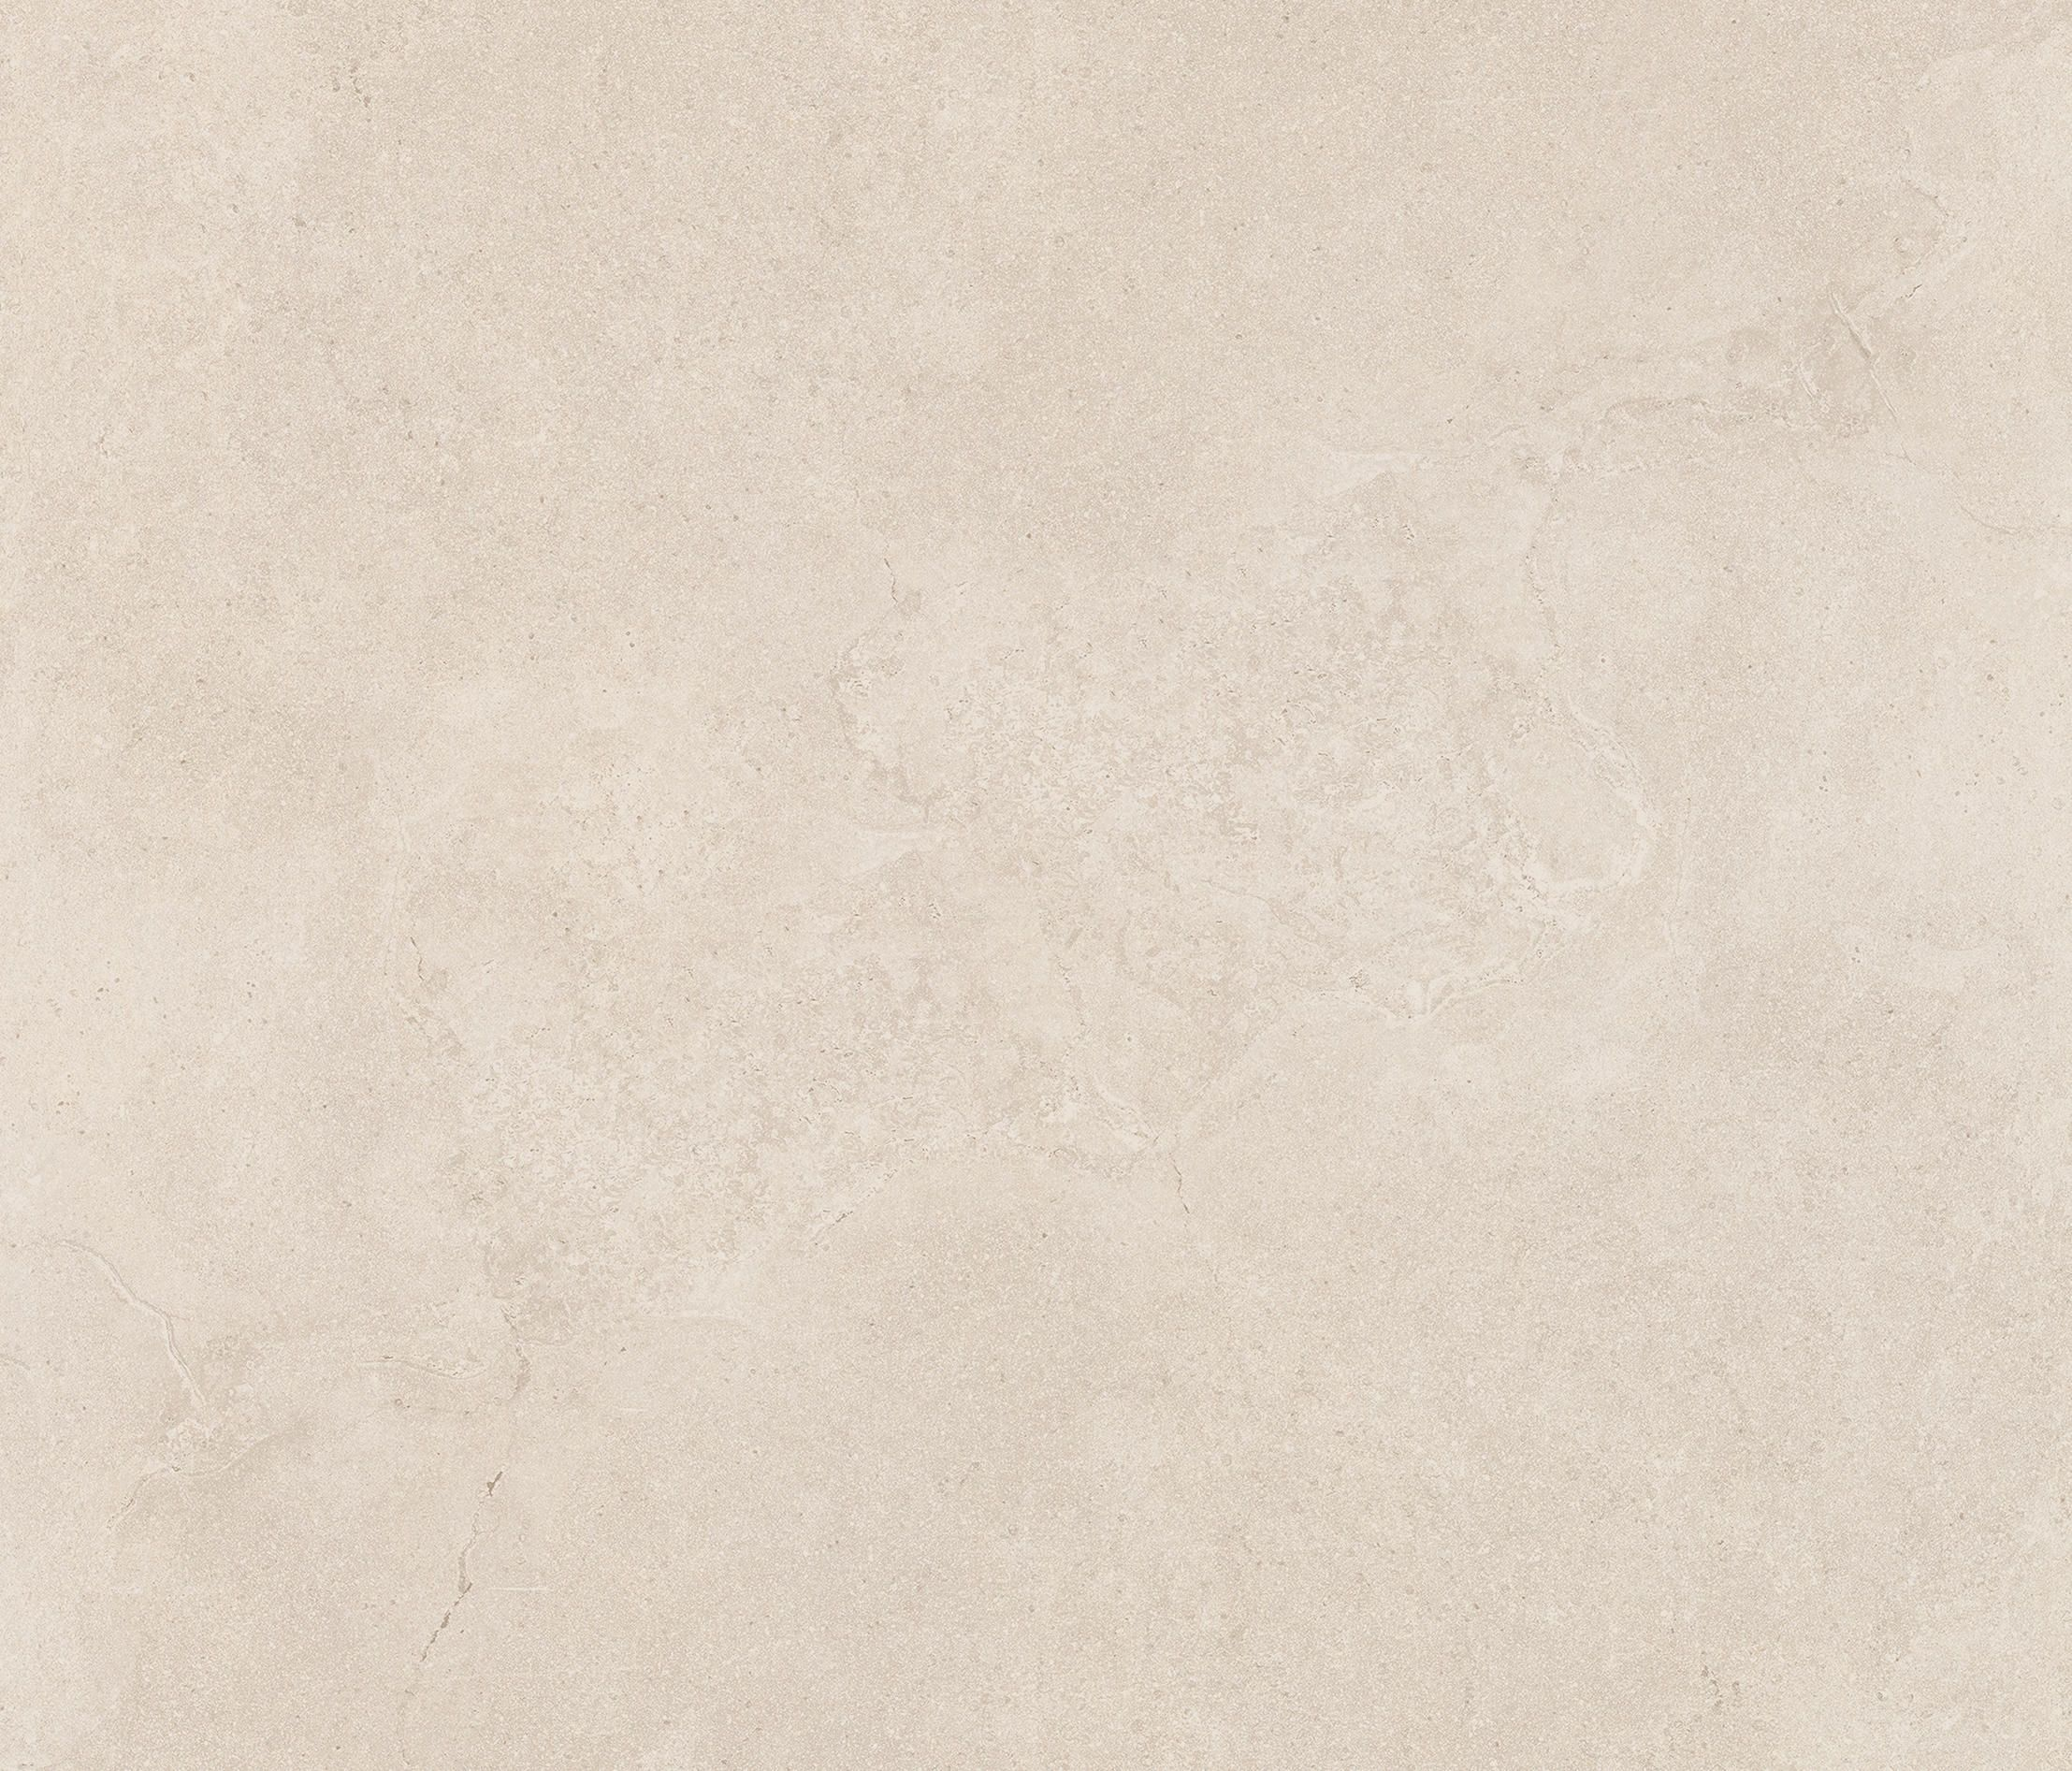 Carnaby Ivory By Ceramiche Supergres Floor Tiles Textured Wallpaper Wall Coverings Brewster Wallcovering